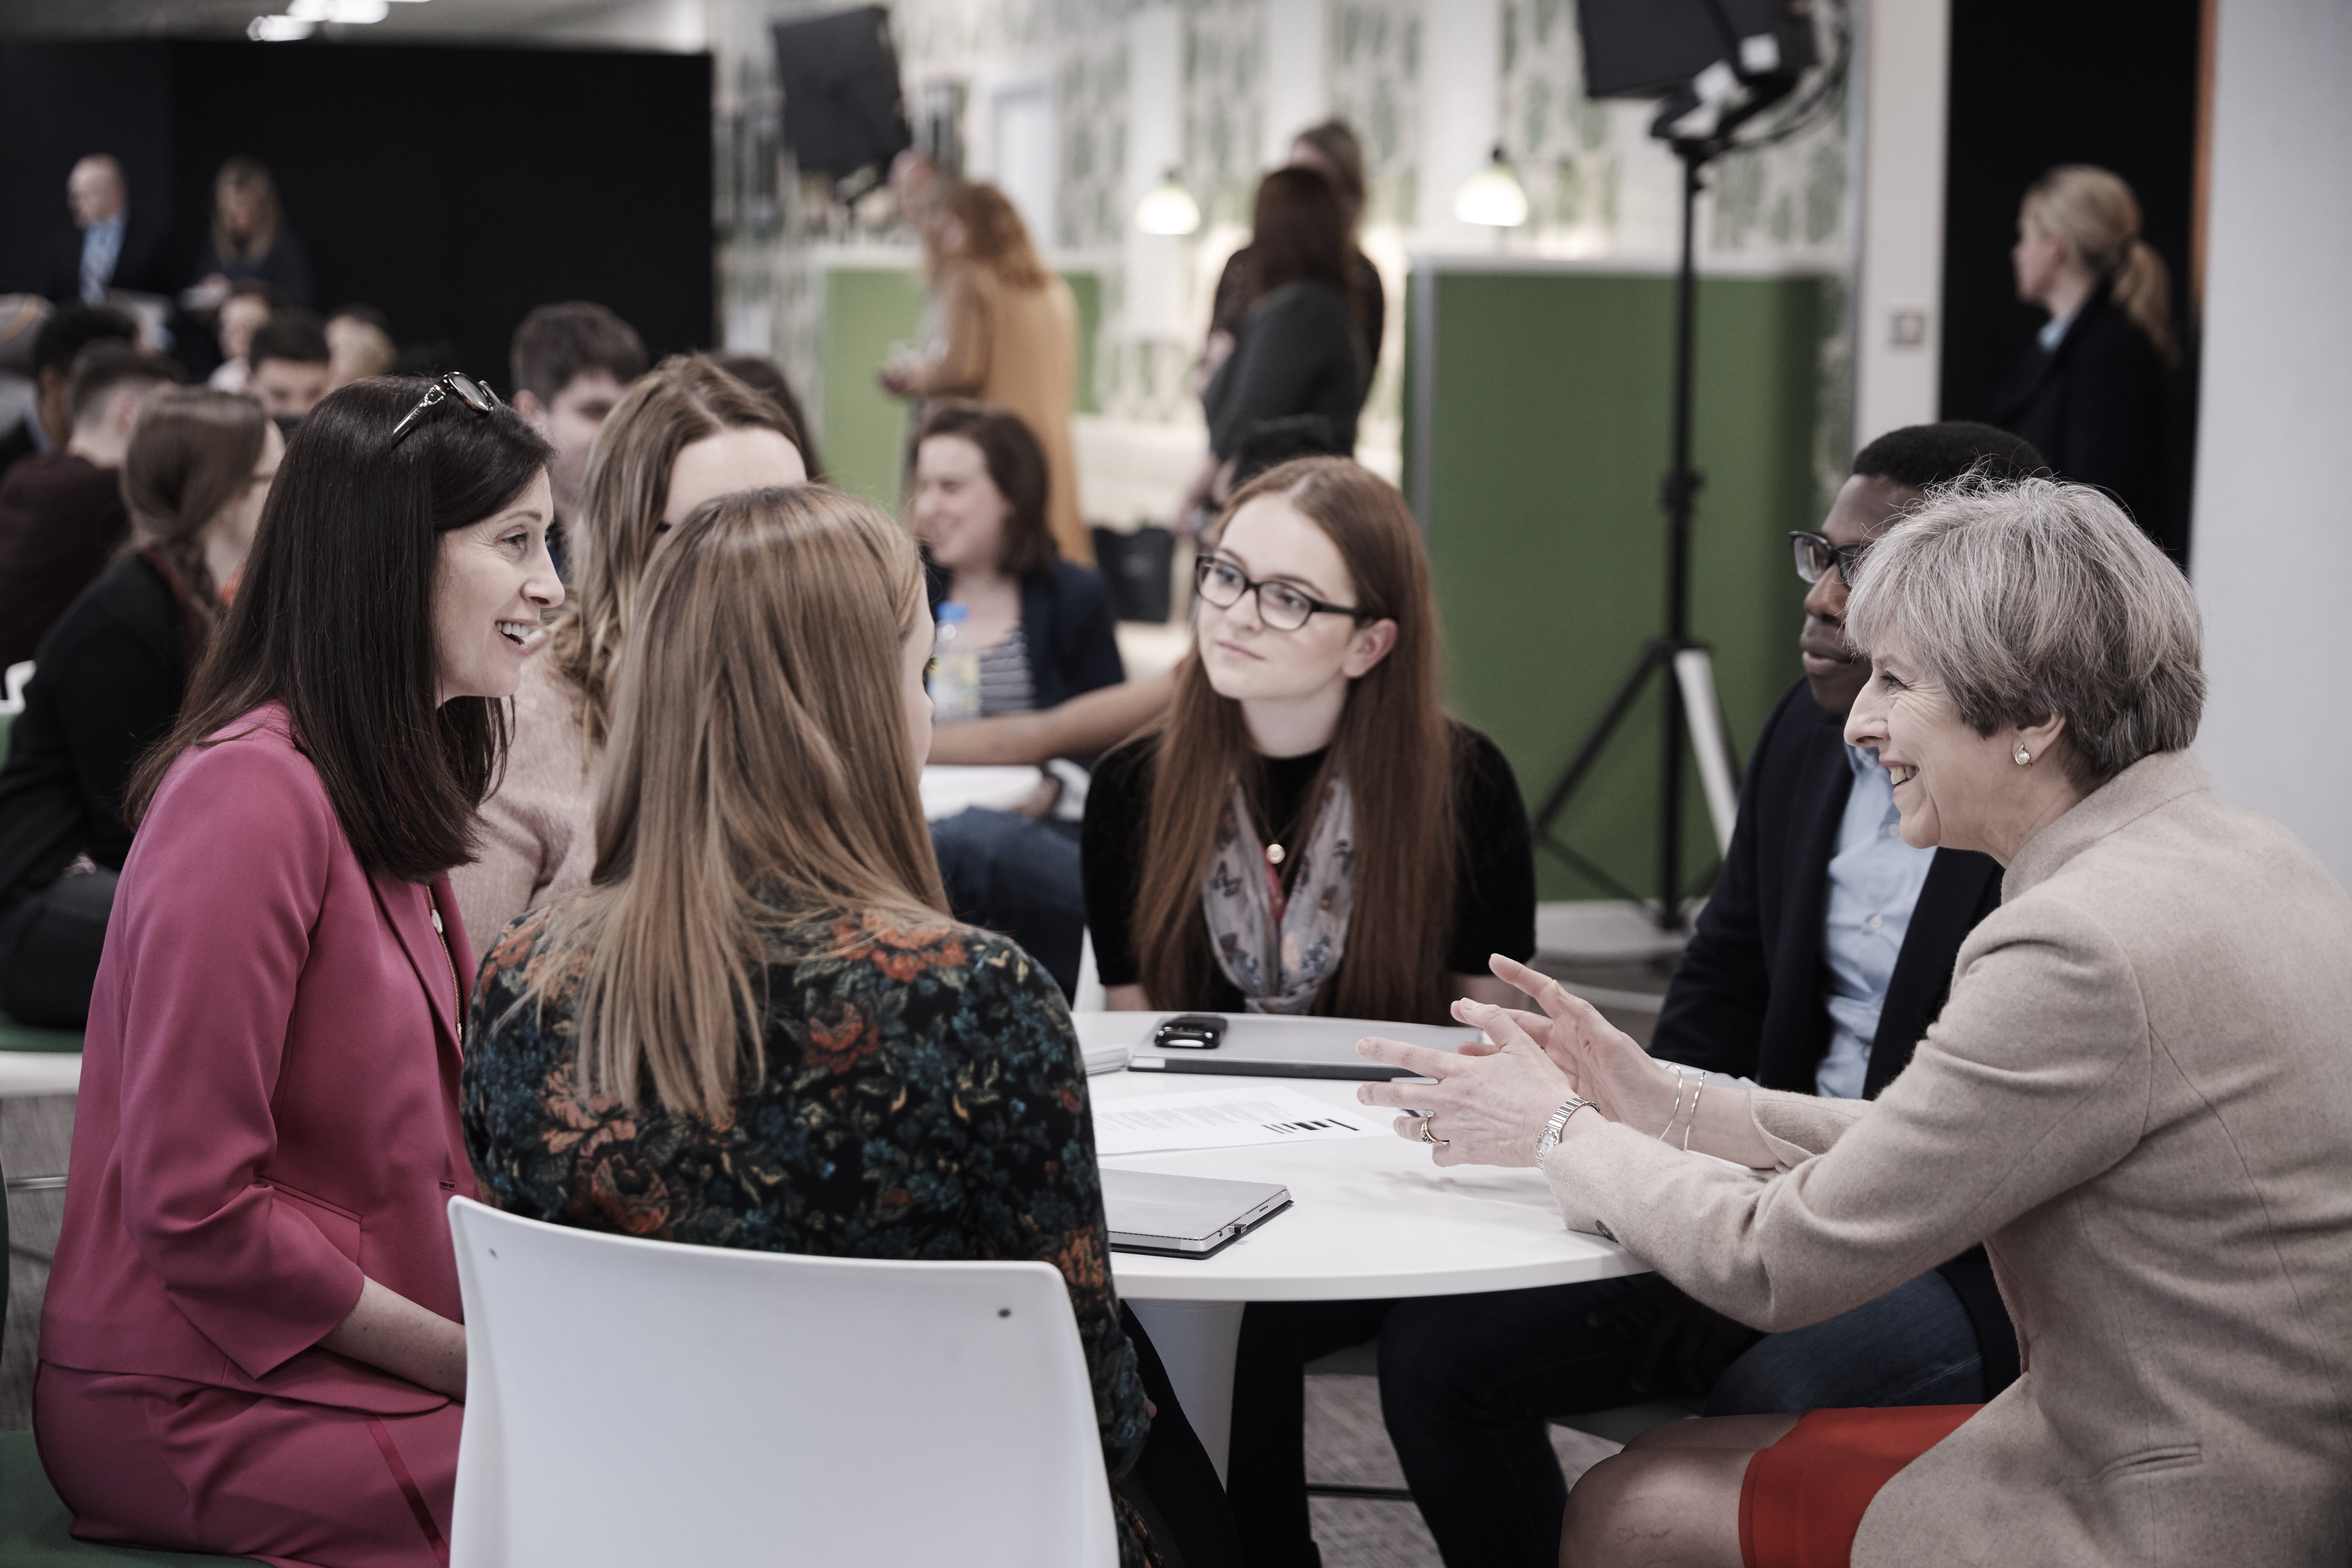 Prime Minister Theresa May and Microsoft UK CEO Cindy Rose meet interns, apprentices and graduates